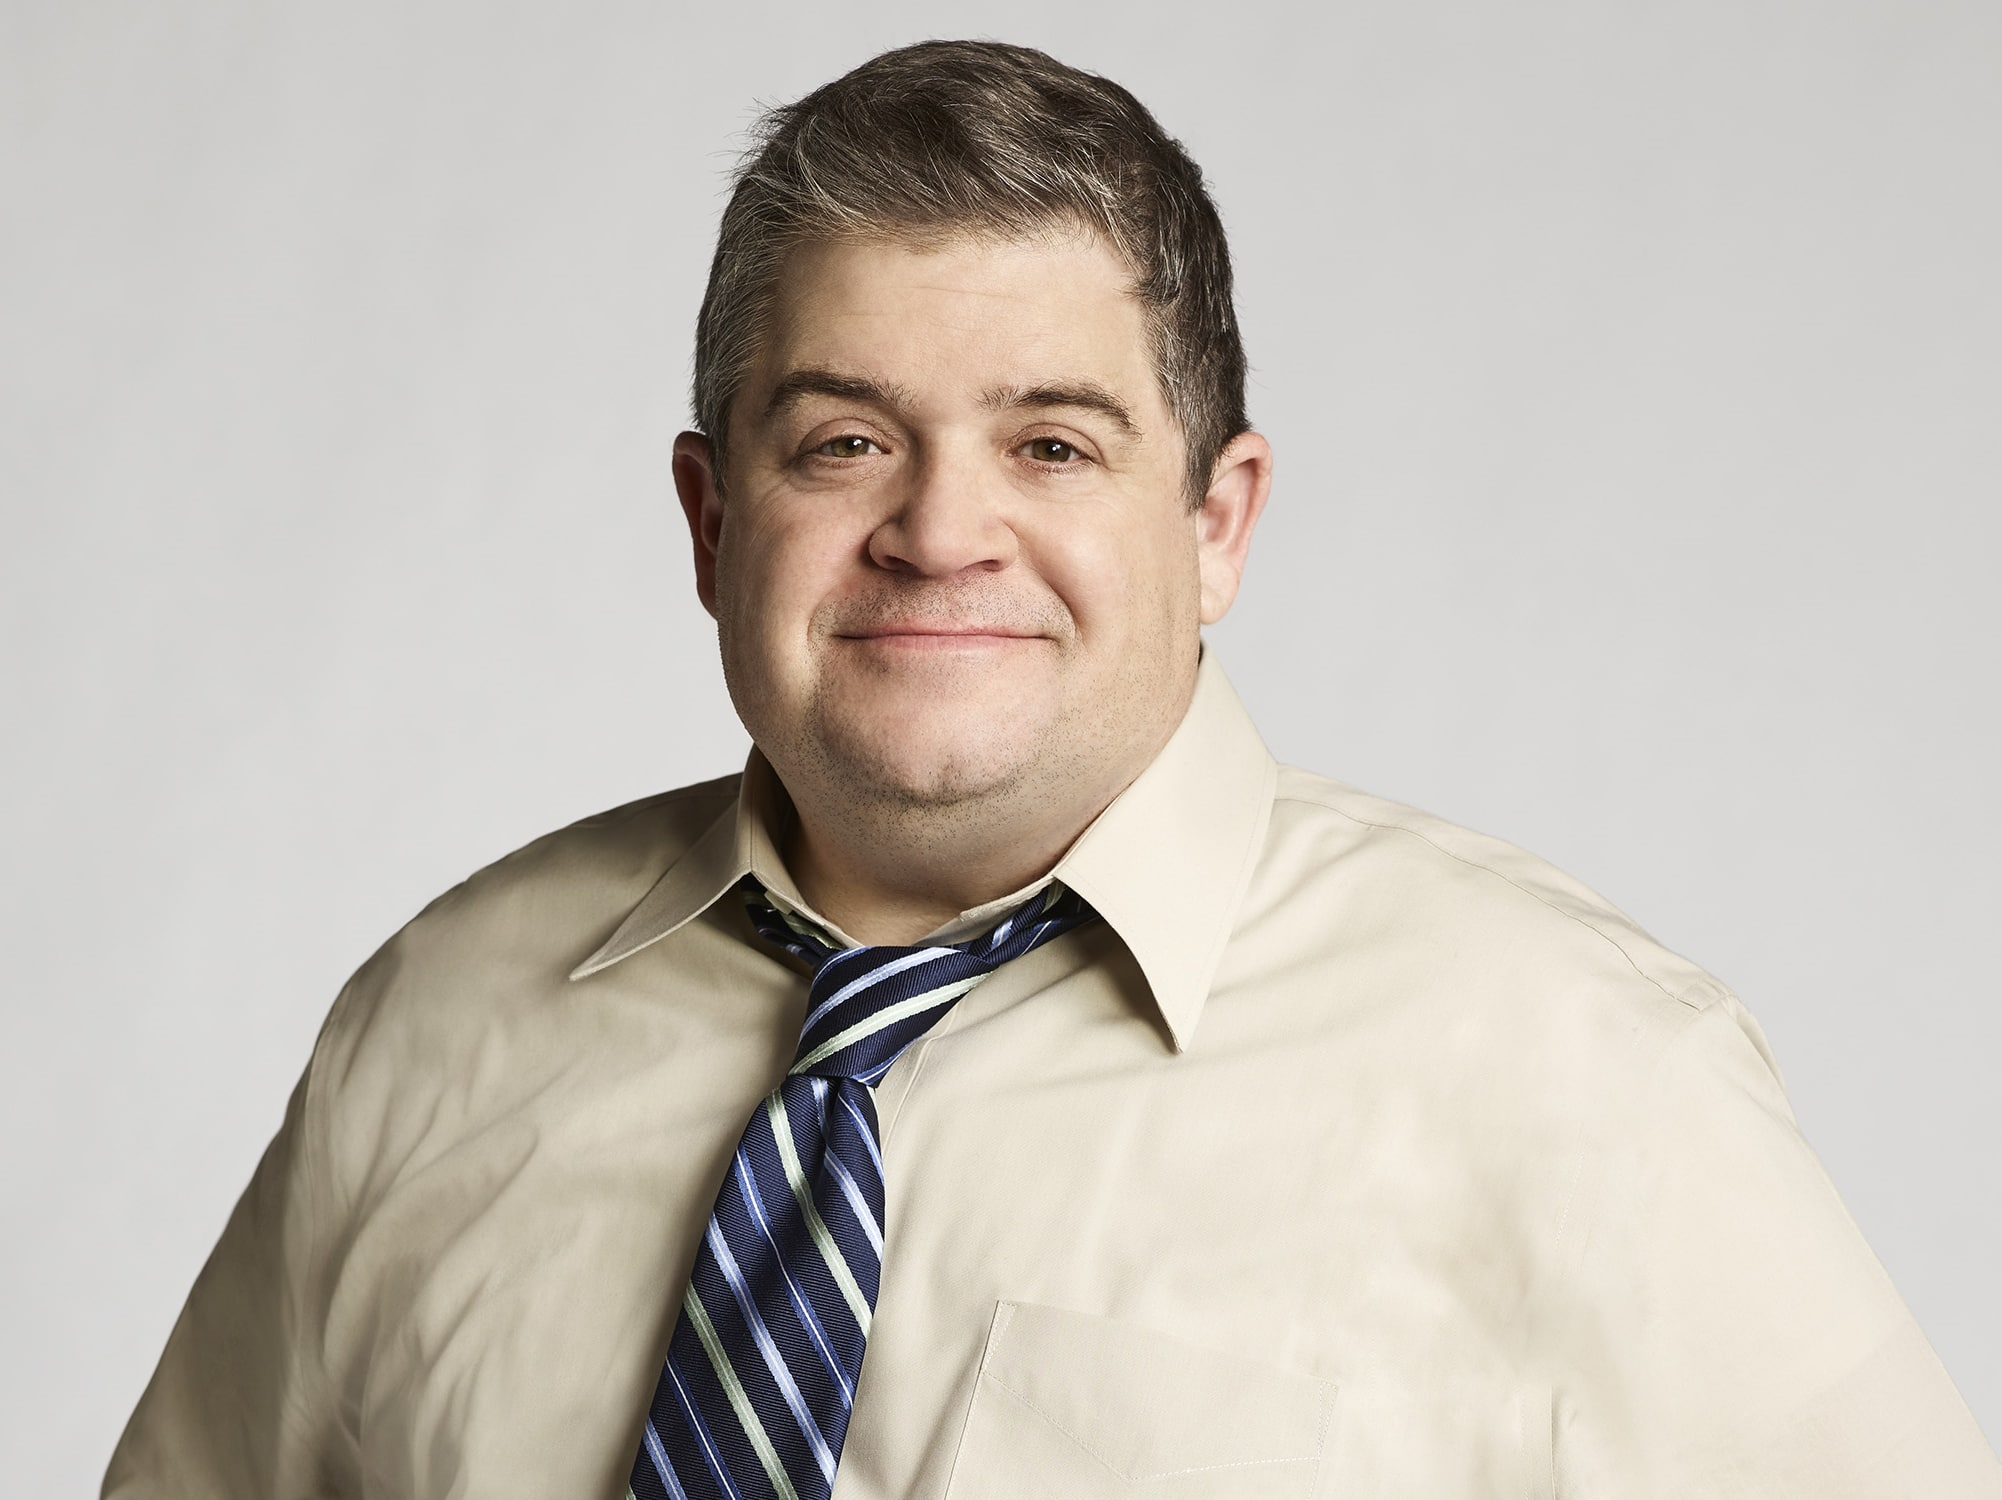 Patton Oswalt bio